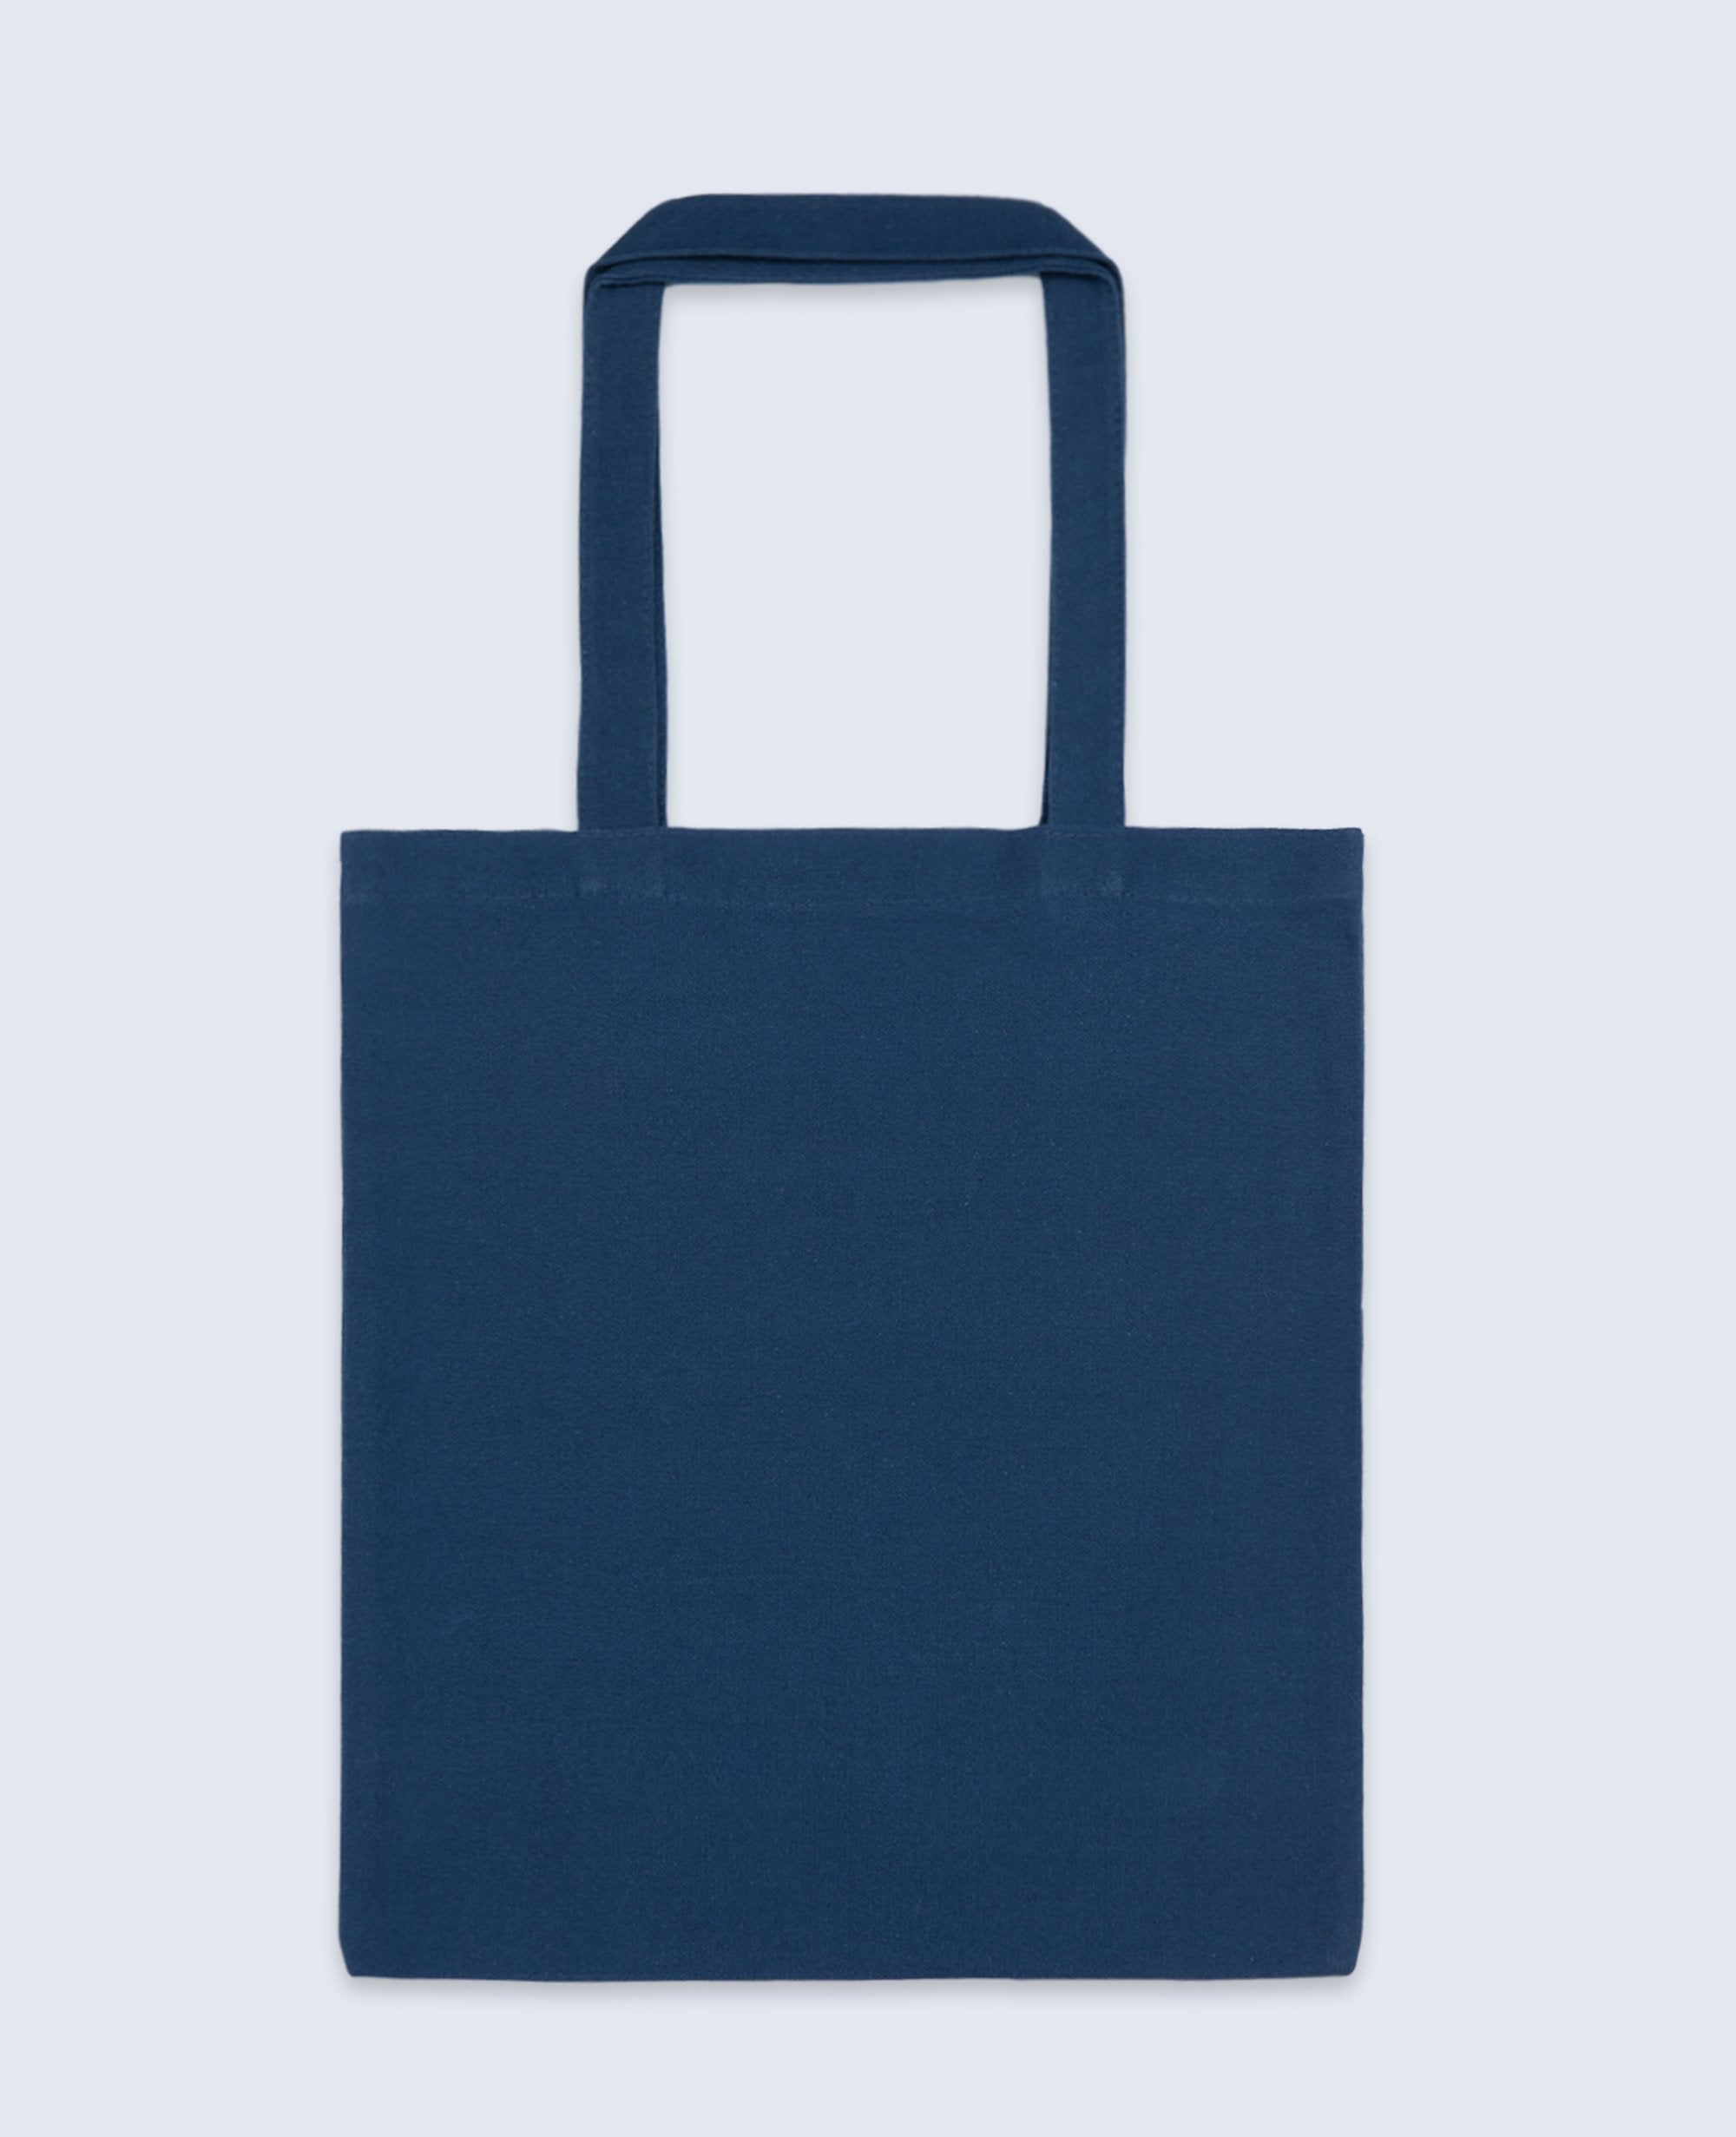 Long Handle Tote bag in Navy - Tote bags - BRANMA - BRANMA